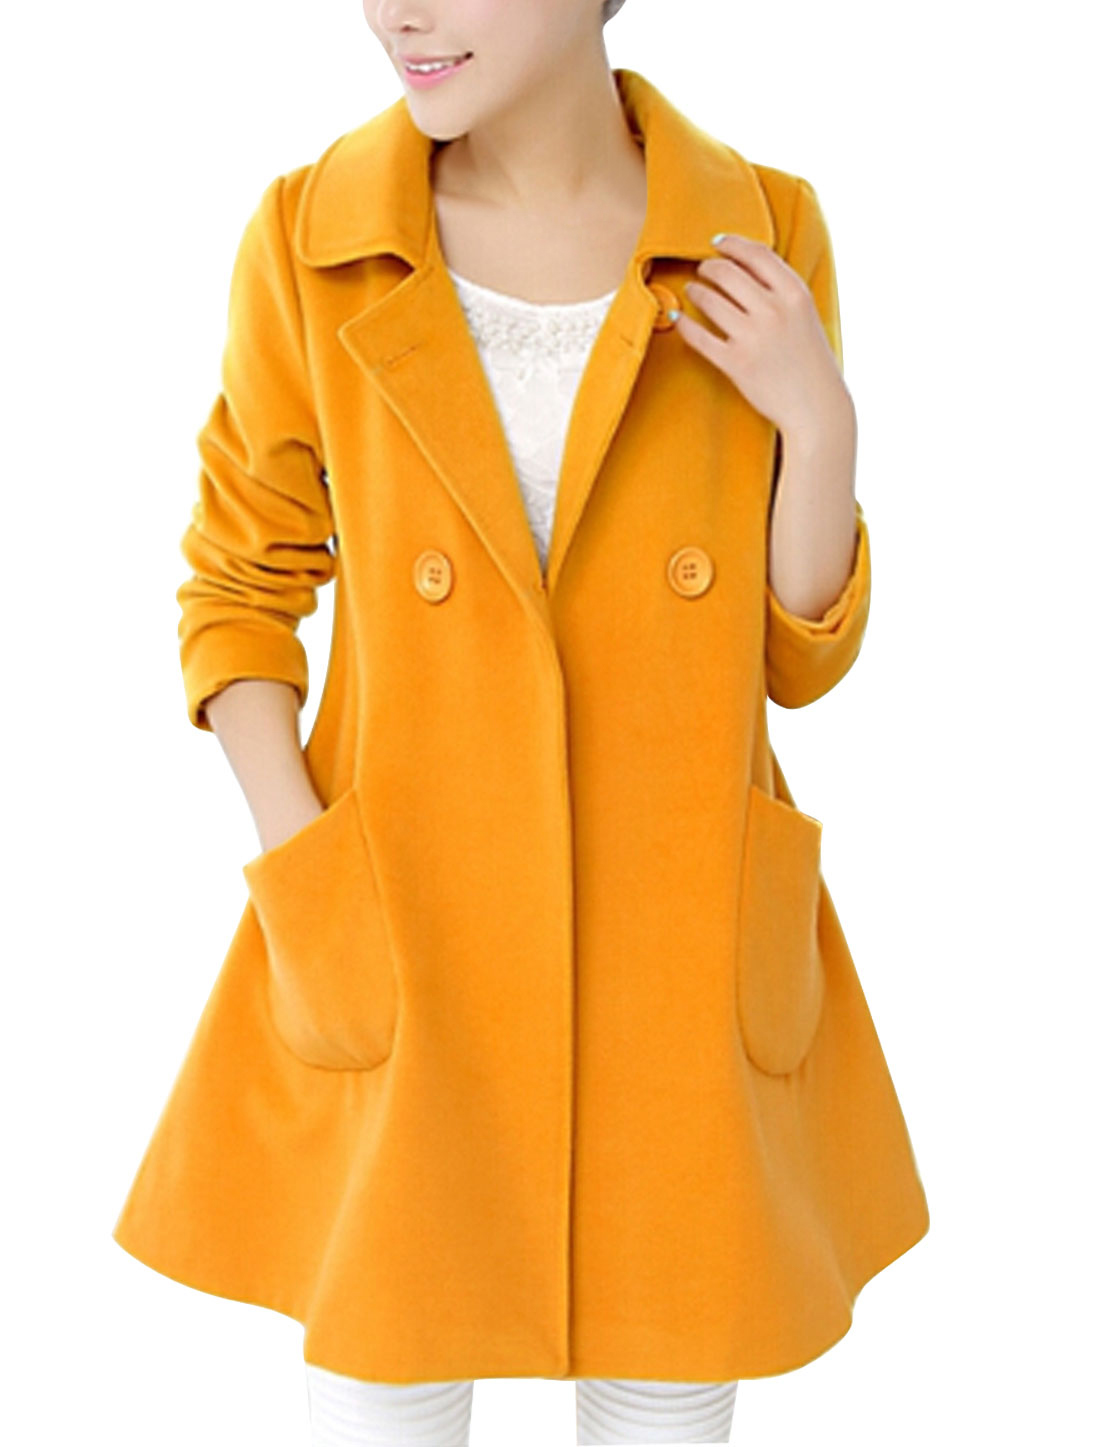 Lady Notched Lapel Double Breasted Cozy Fit Worsted Coat Yellow M